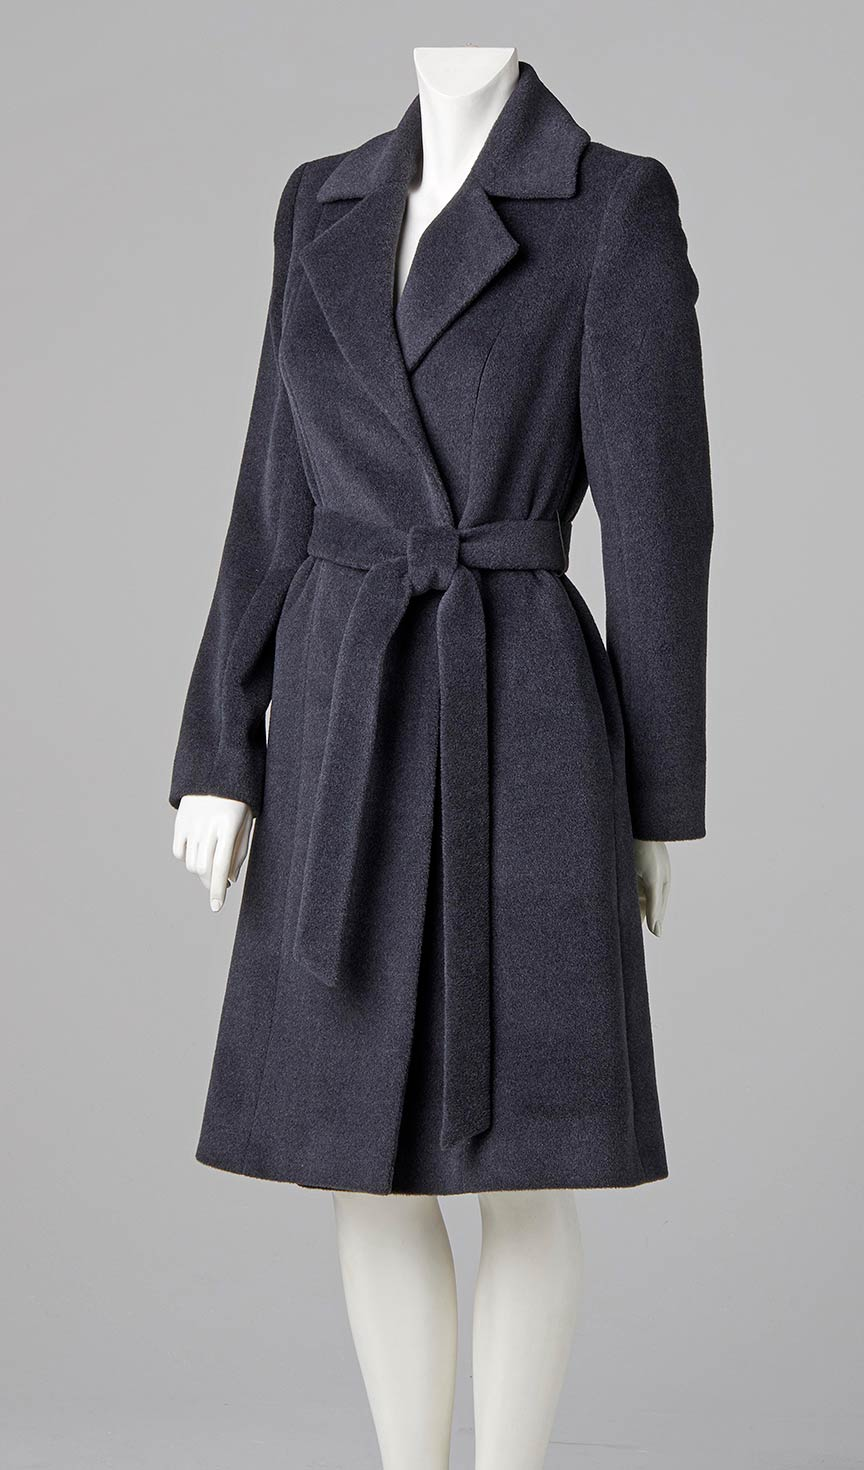 couture design designer wrapover belted coat south west london